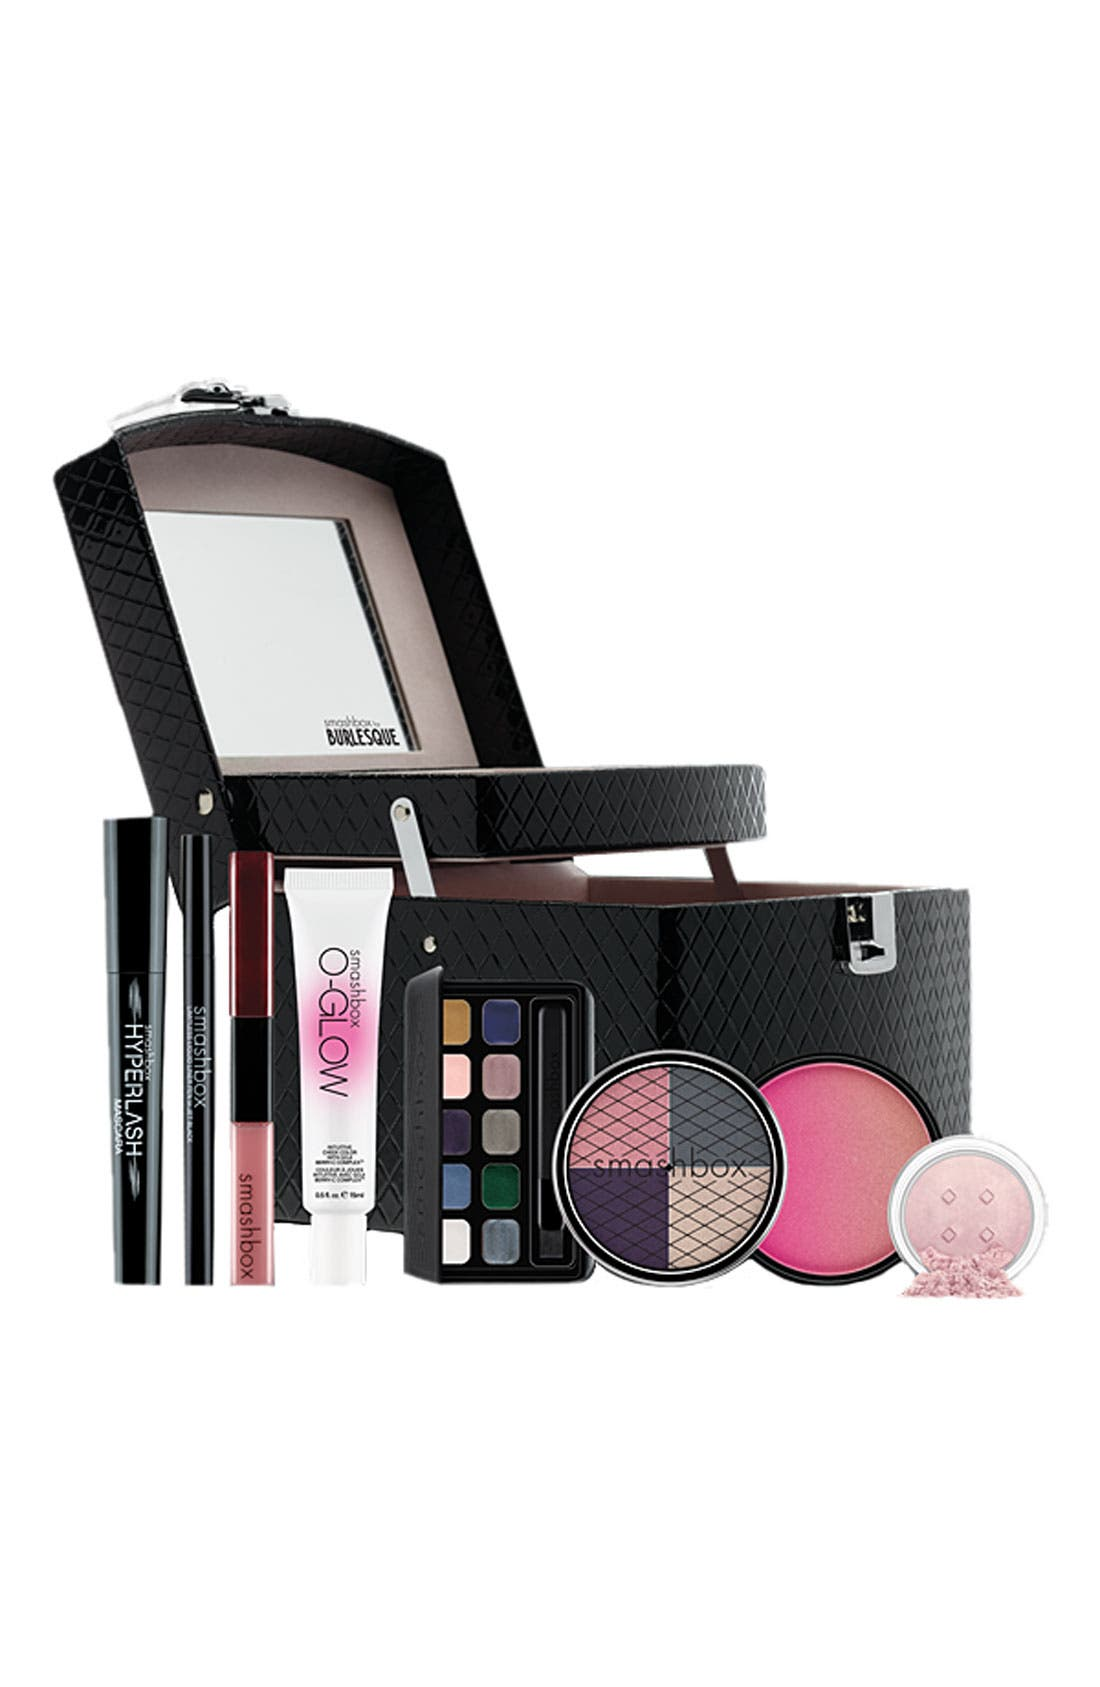 Smashbox 'Burlesque' Beauty Collection & Train Case ...